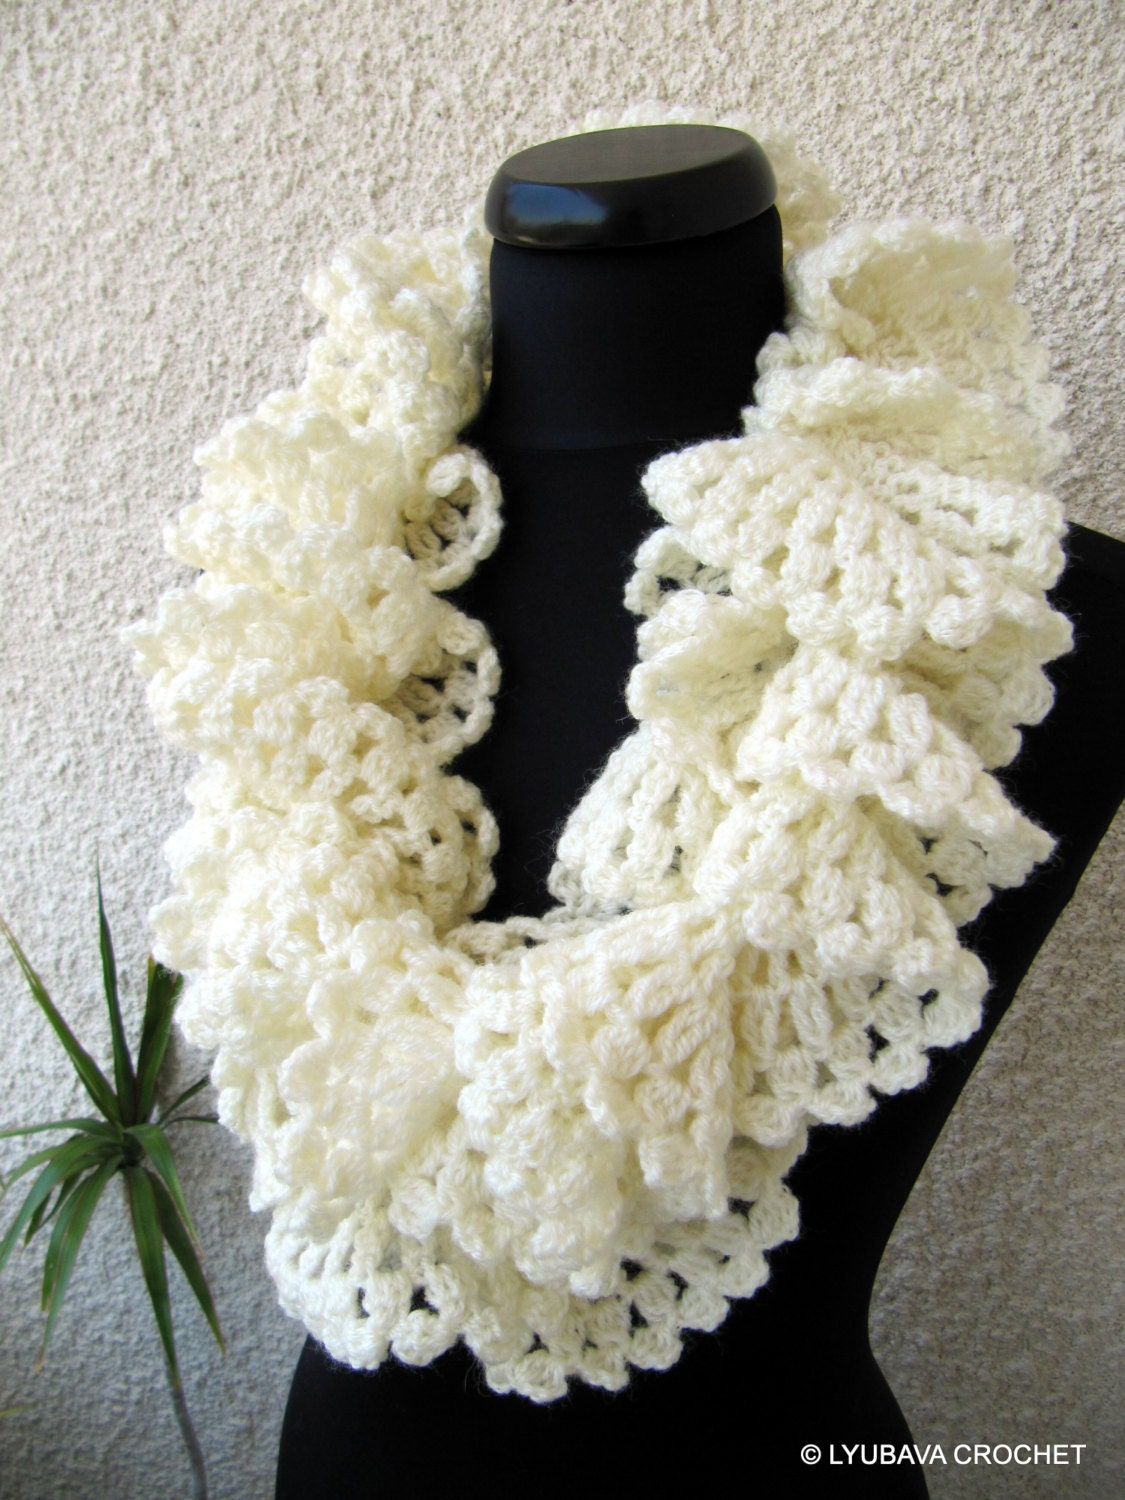 Crochet Patterns Ruffle Scarf : Crochet Ruffle Scarf Pattern, Marvellous Ruffle Lace Scarf Crochet ...